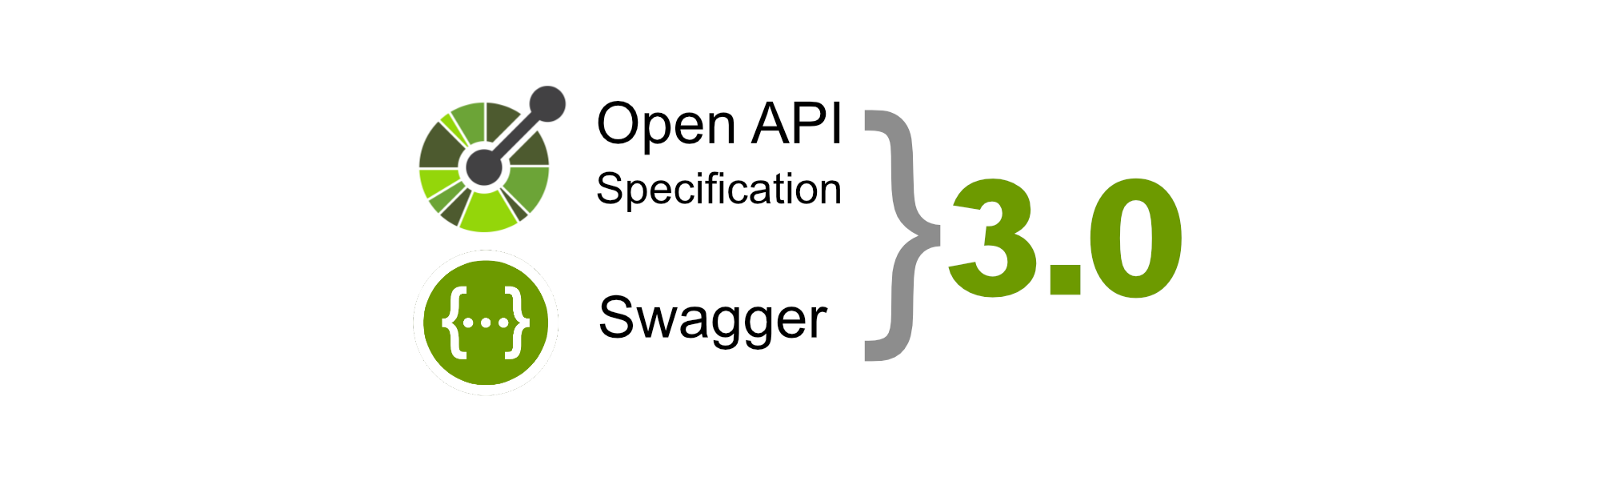 What's New In Open API 3 0 a k a  Swagger 3 0 - Basic Drift